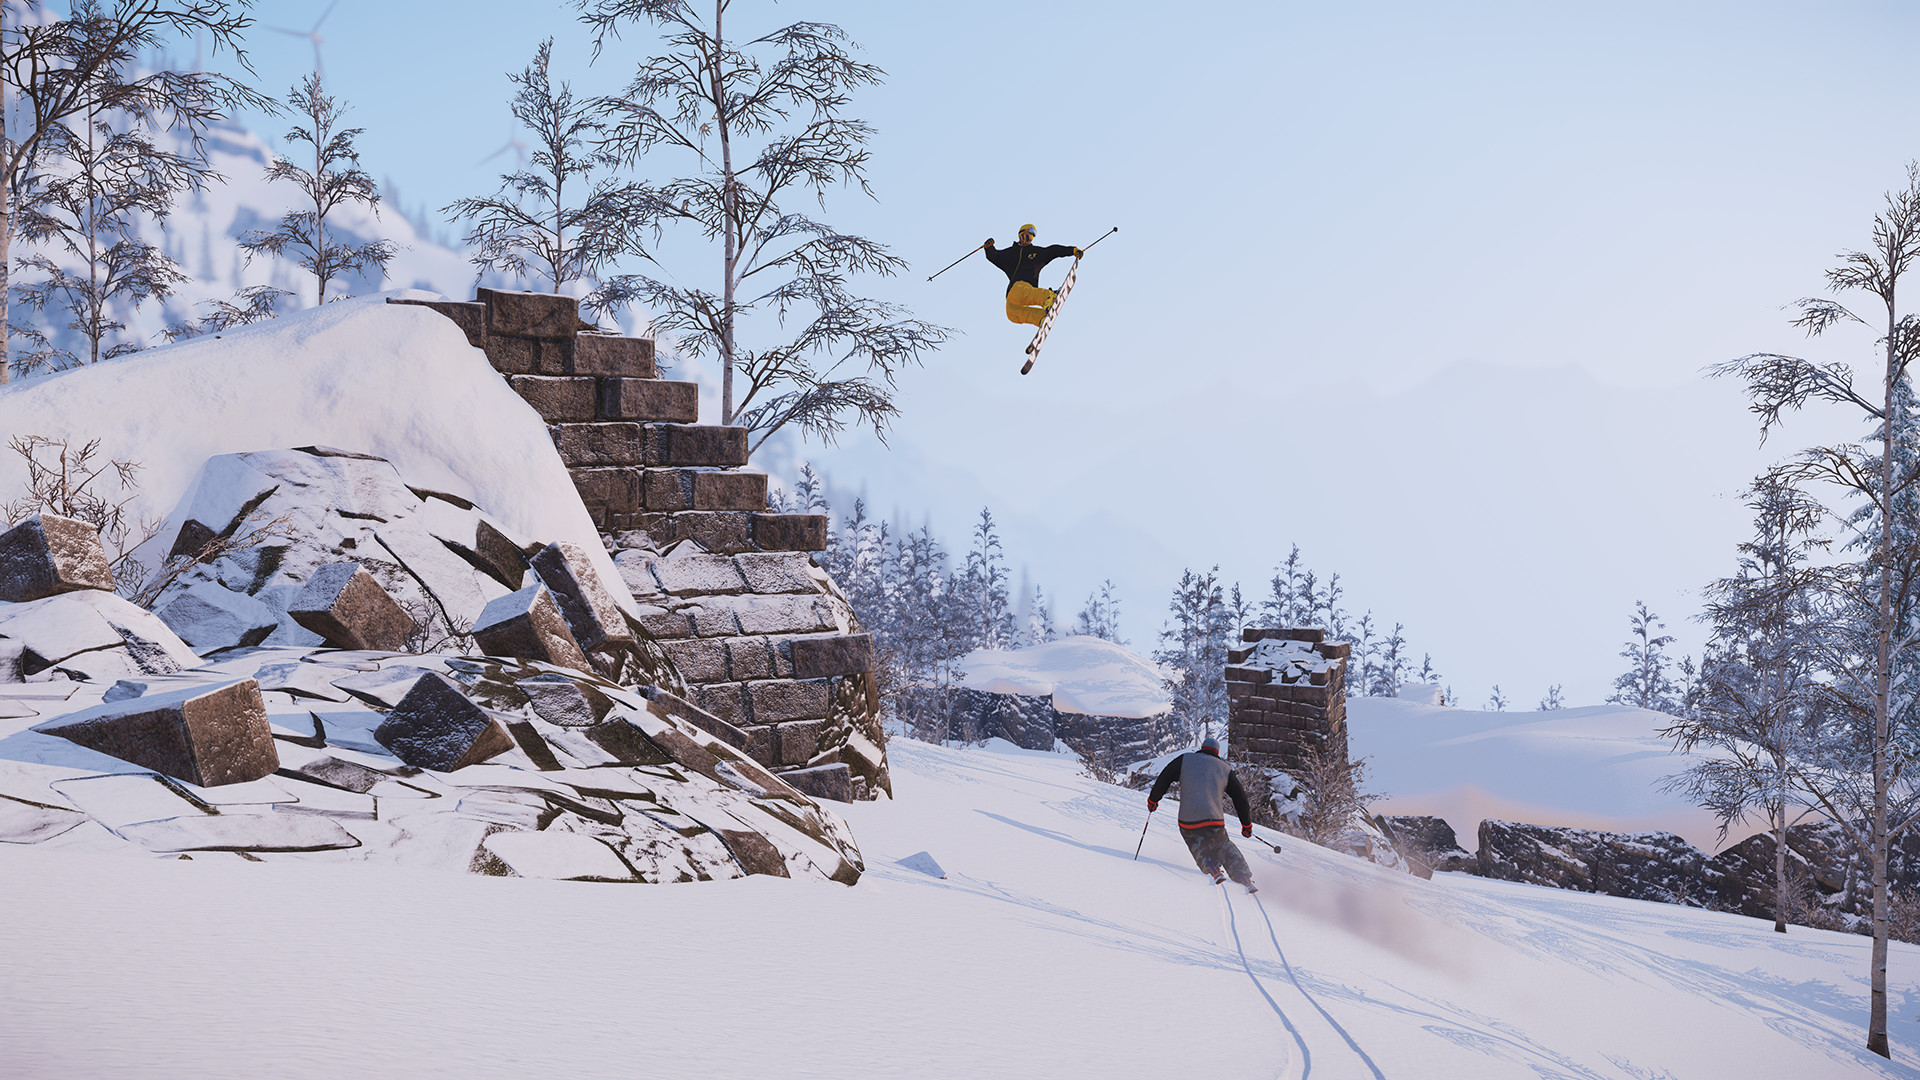 SNOW Gameplay Screenshot 1